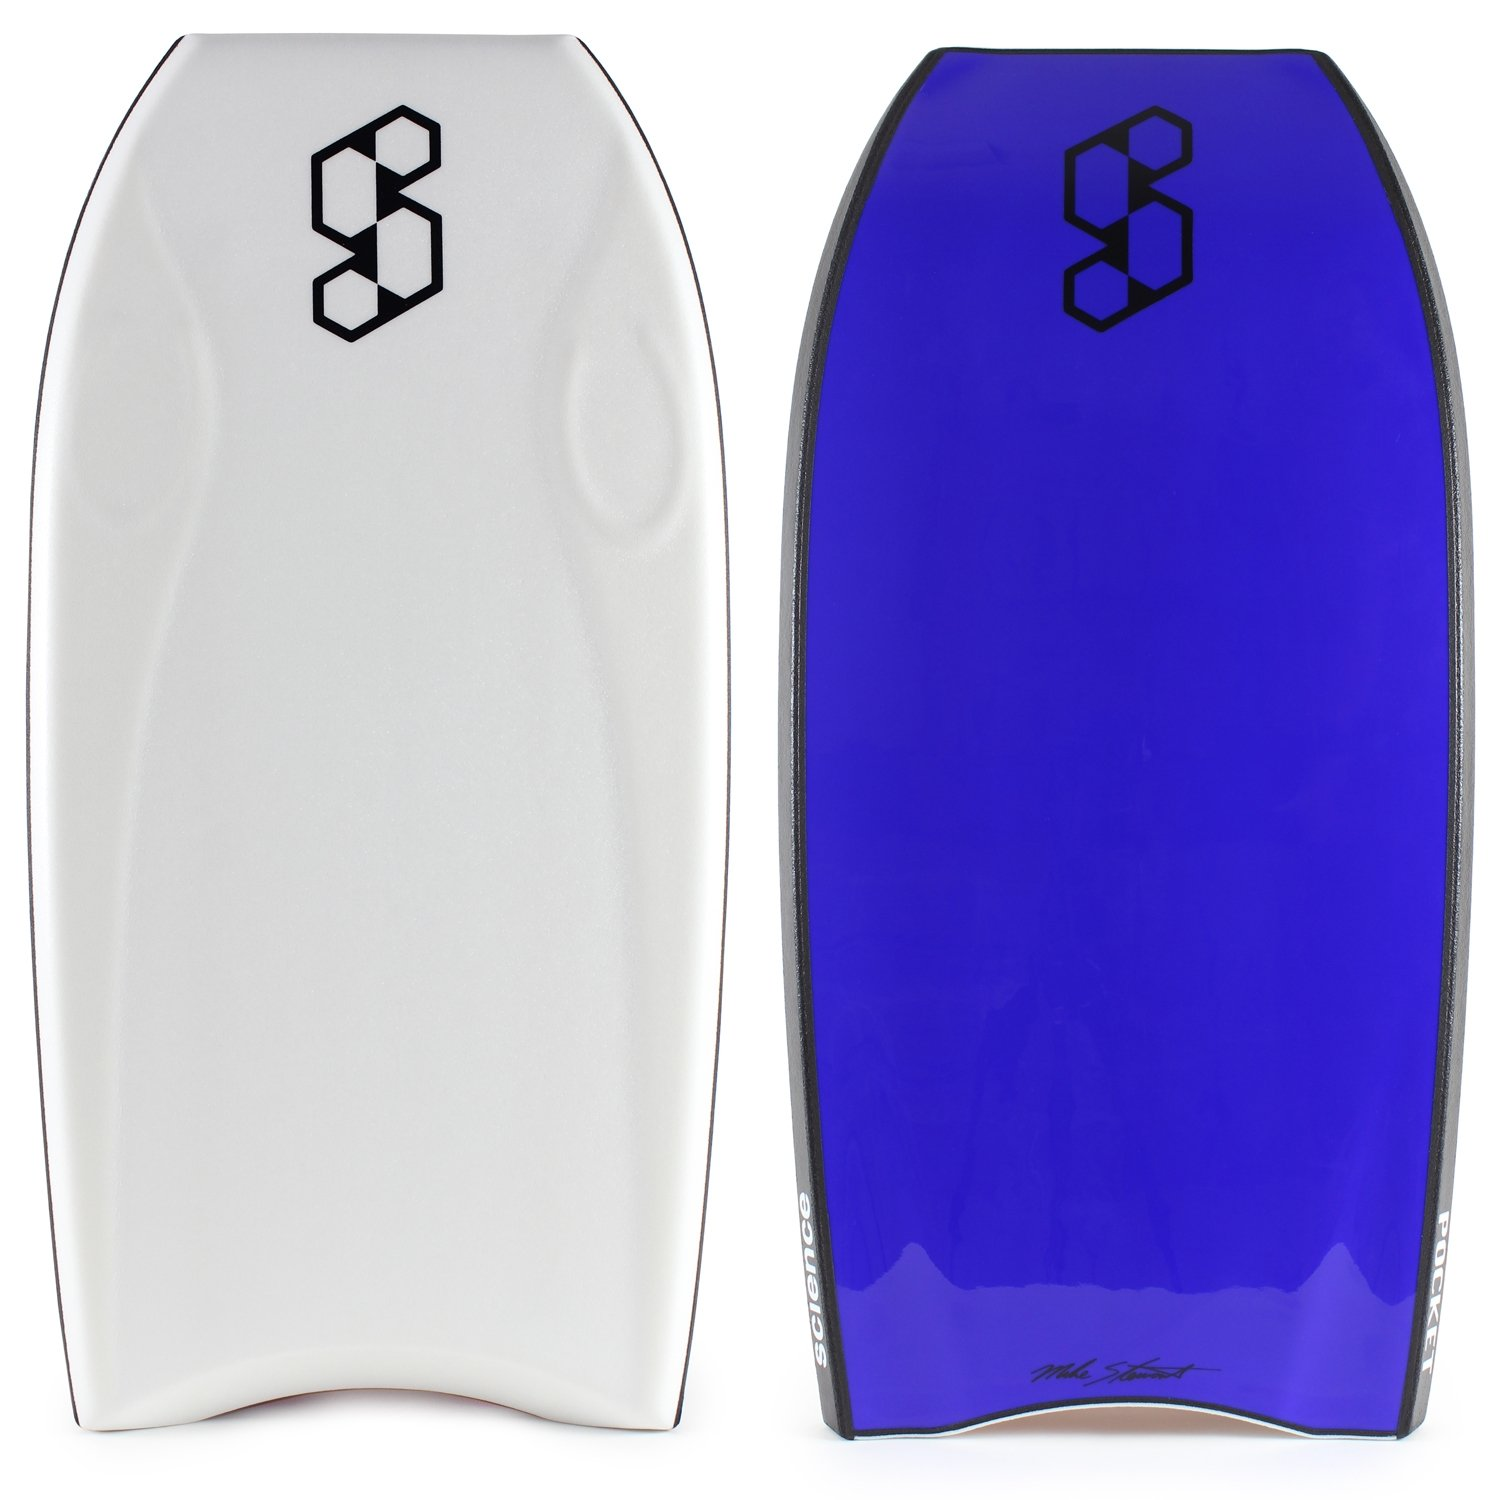 Mike Stewart Pocket Tech 41.5 Crescent Tail 2017 Bodyboard - White deck, Black rails, E.Blue bottom